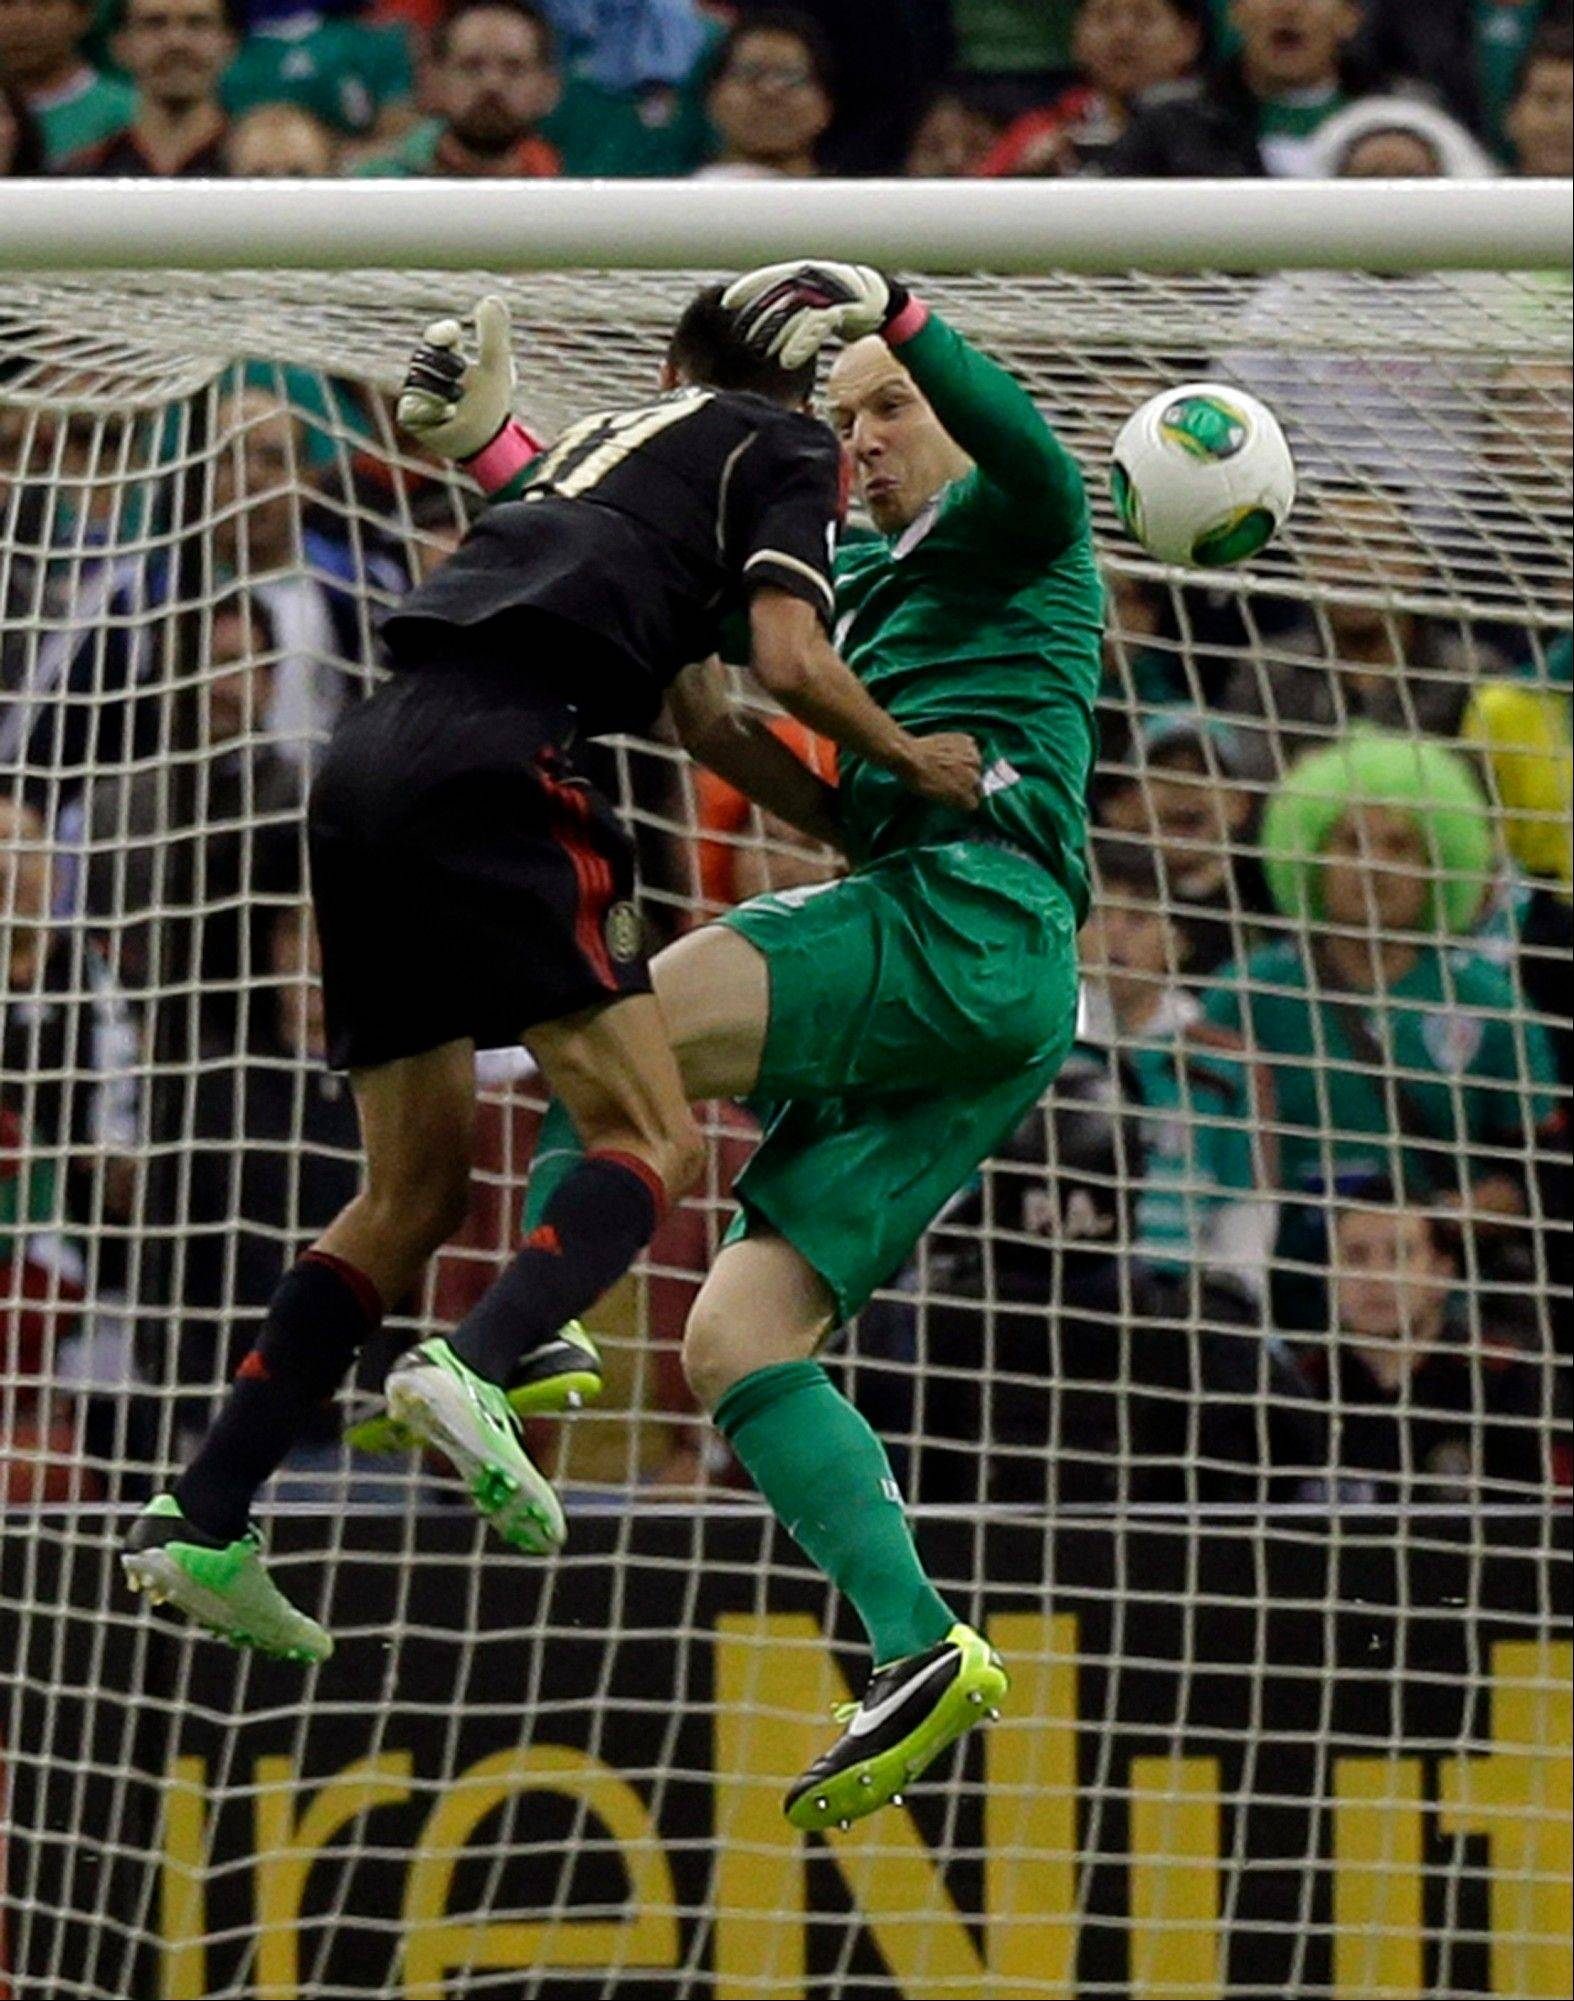 Mexico's Jesus Zabala, left, collides with United States goalkeeper Brad Guzan while trying to score during a 2014 World Cup qualifying match Tuesday at the Aztec stadium in Mexico City.